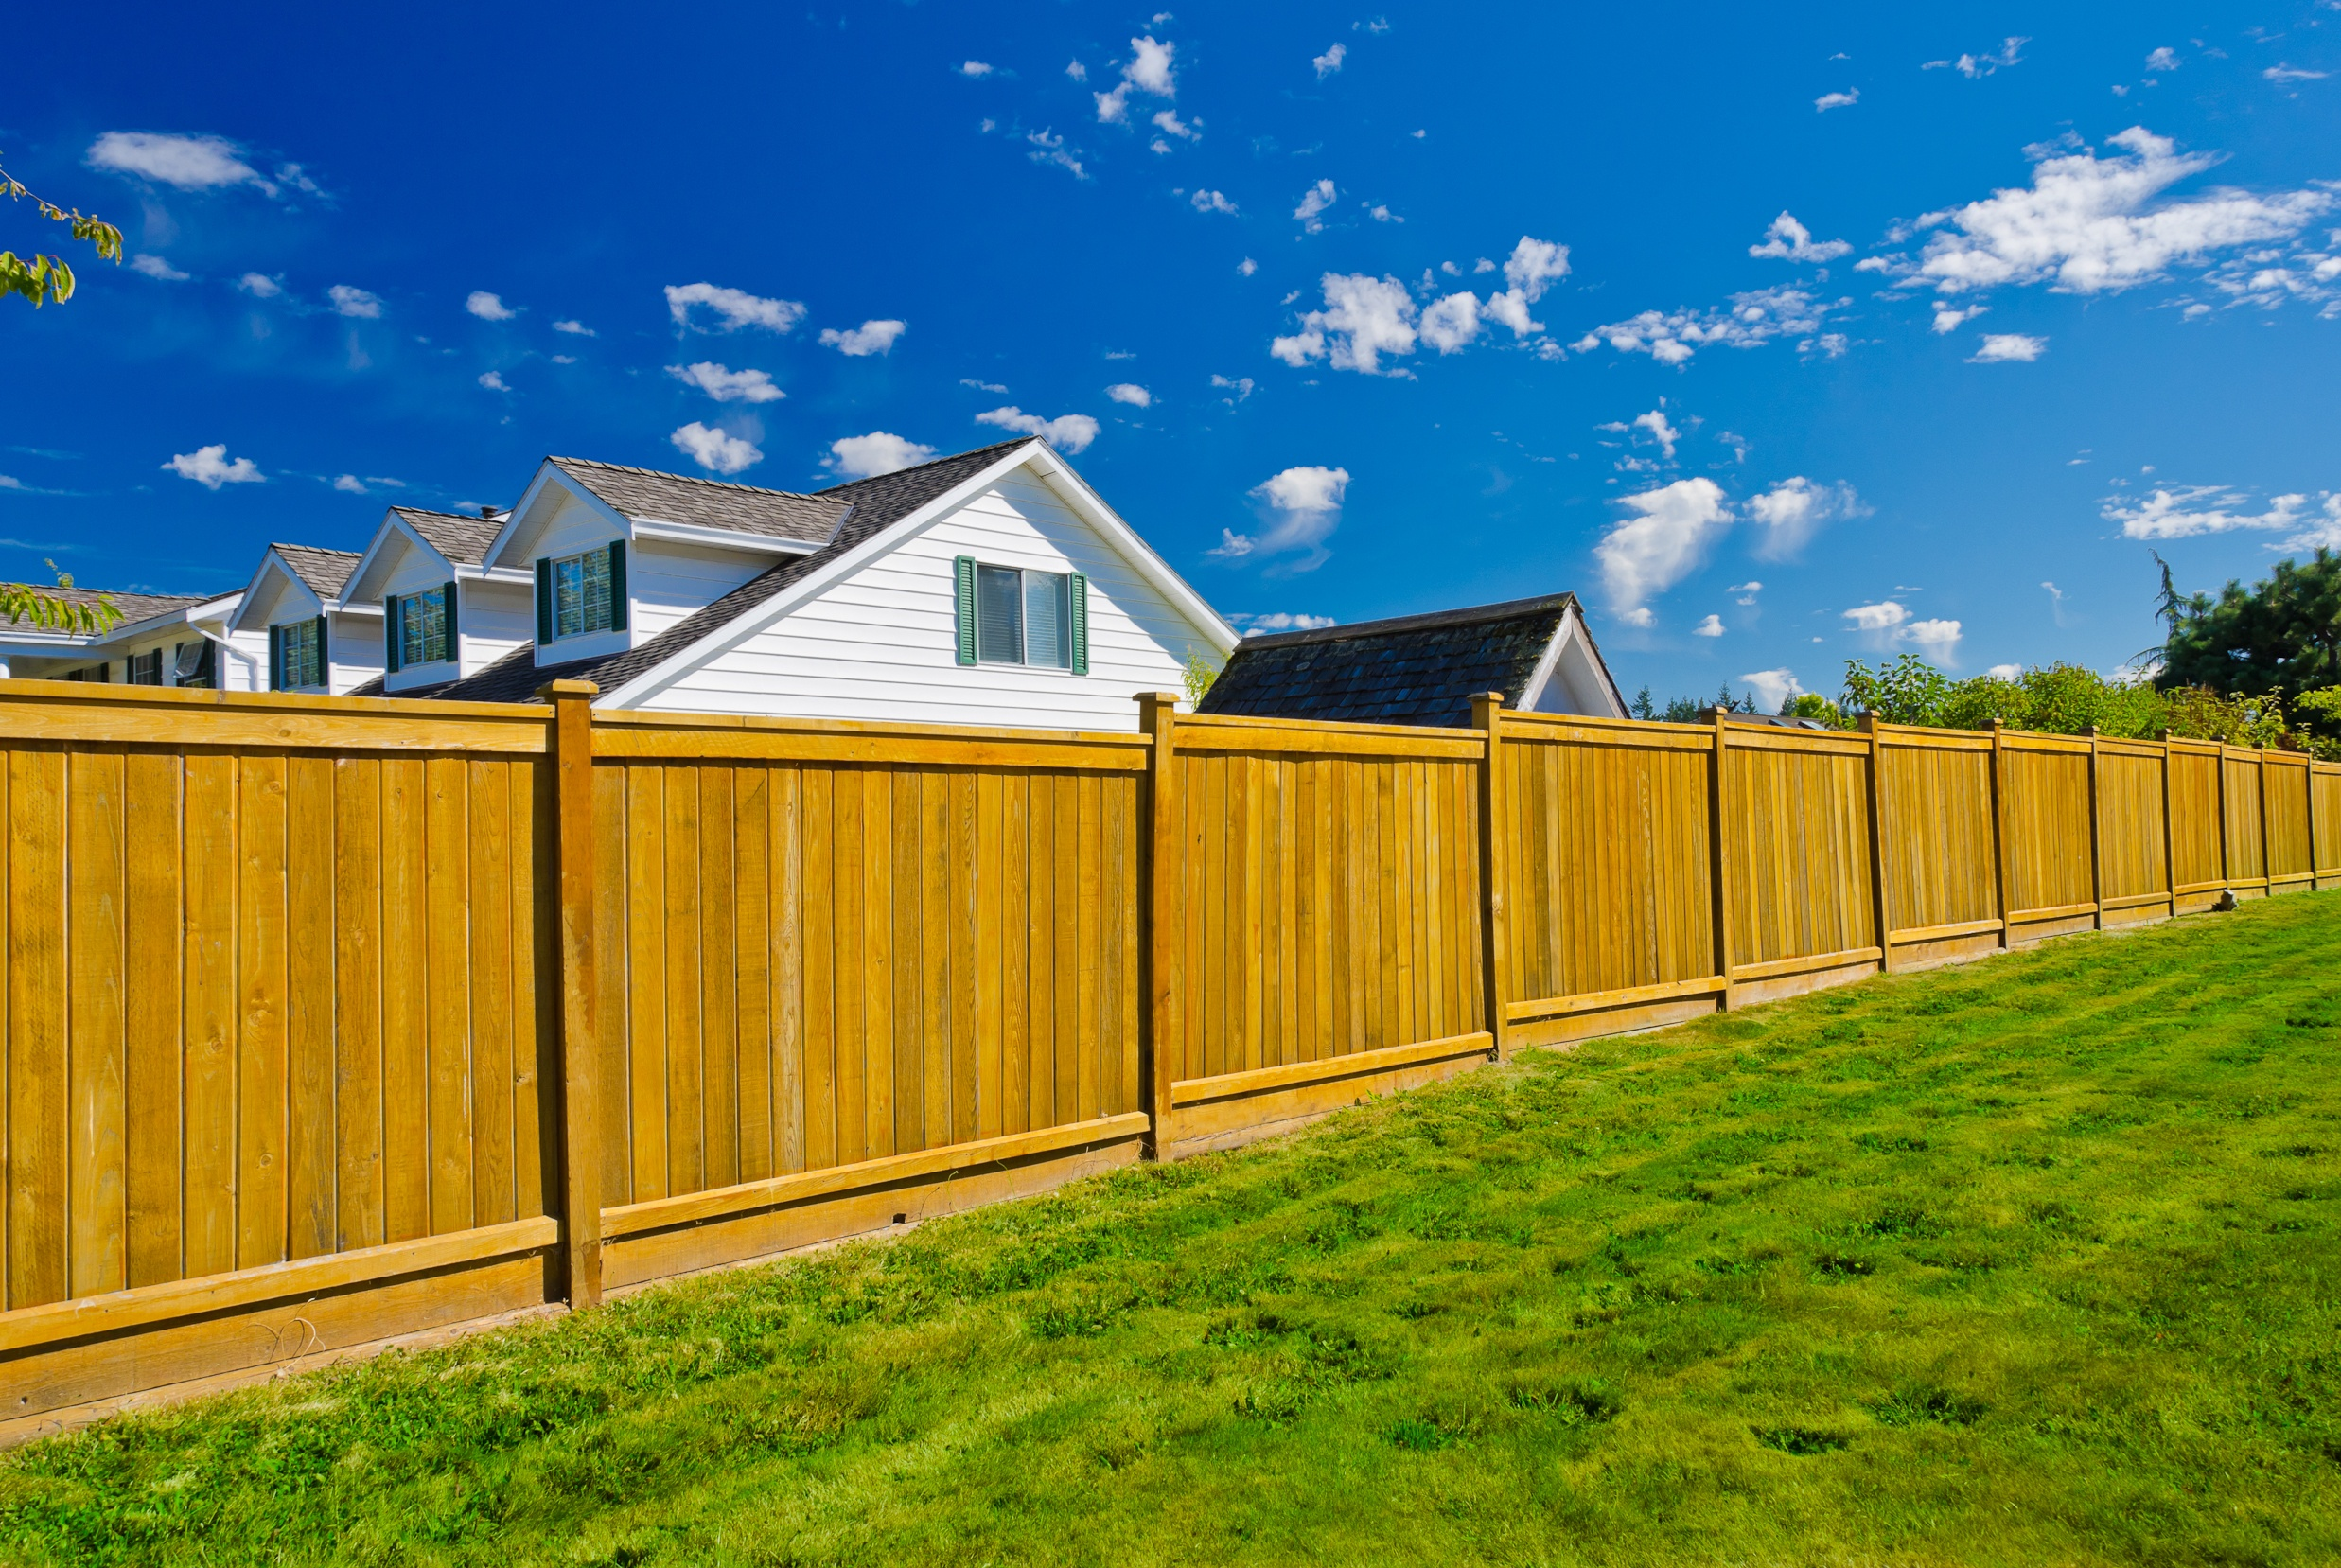 A new fence in a house's yard with value.